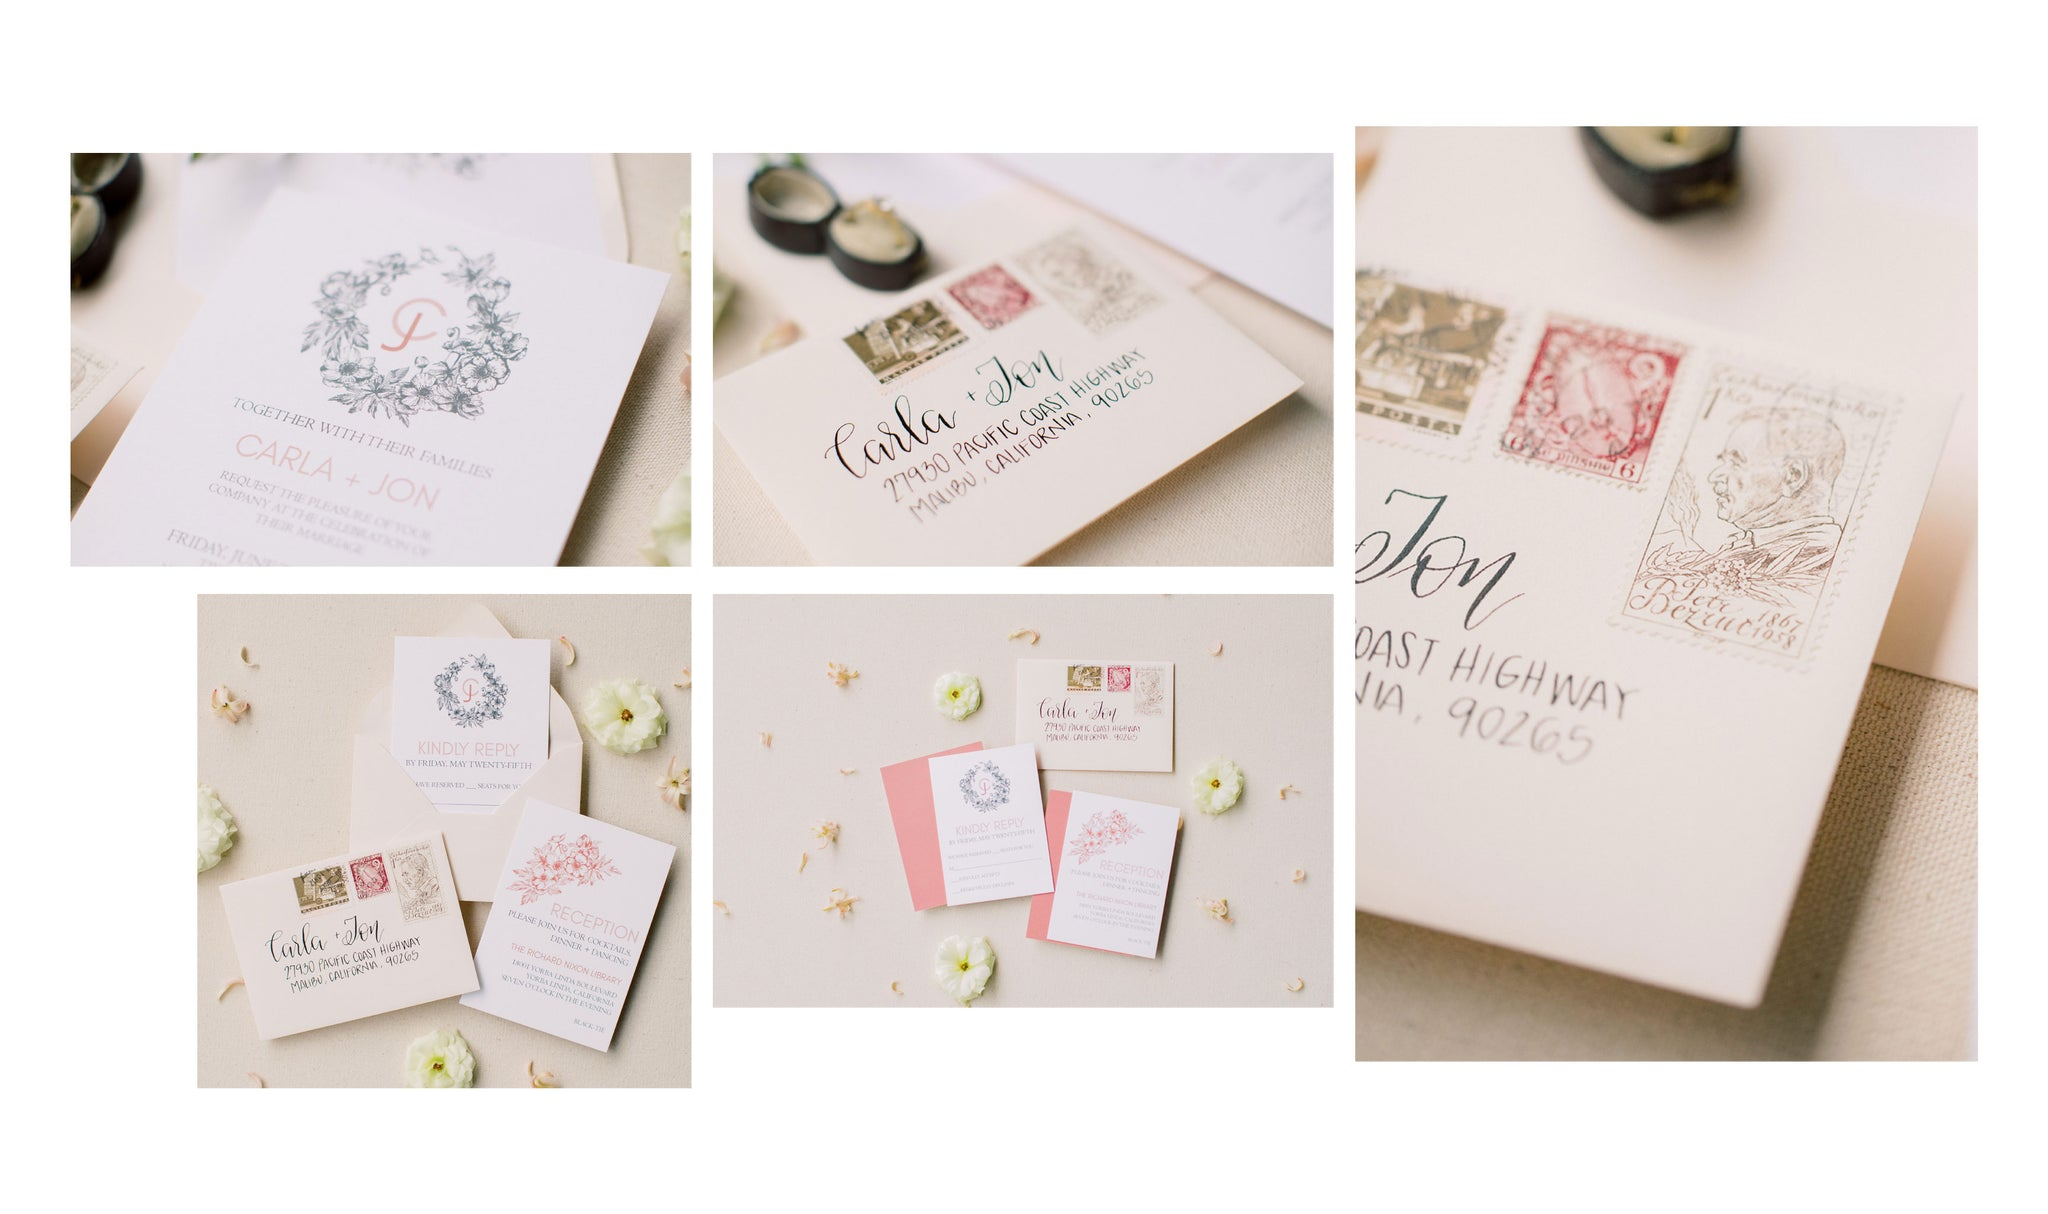 blush wedding invitation with vellum wrap and wax seal by fioribelle